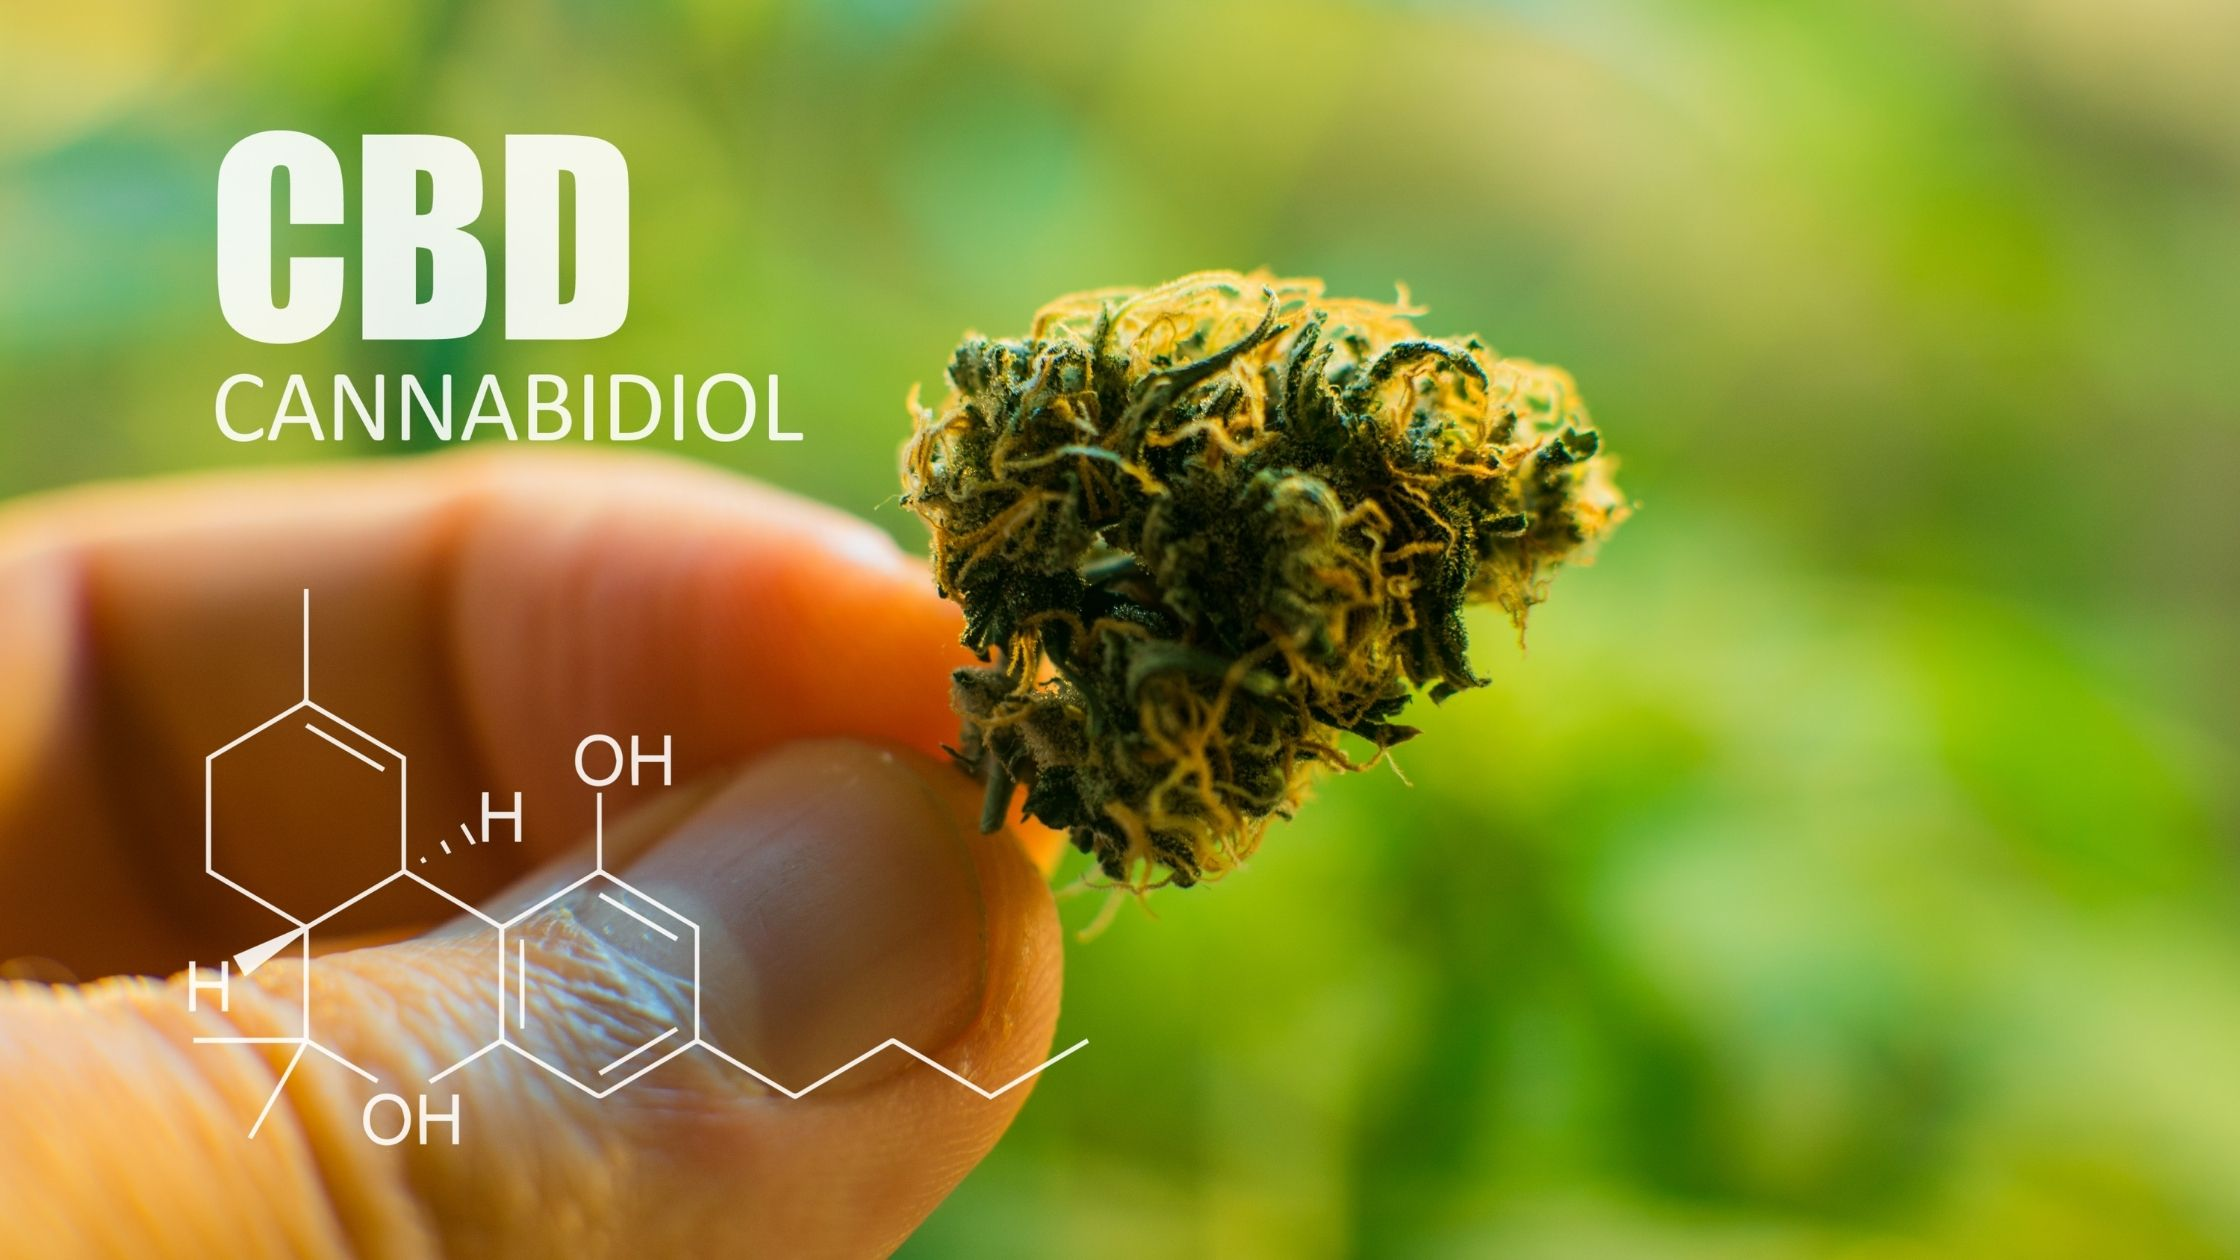 10 facts about CBD that you didn't know